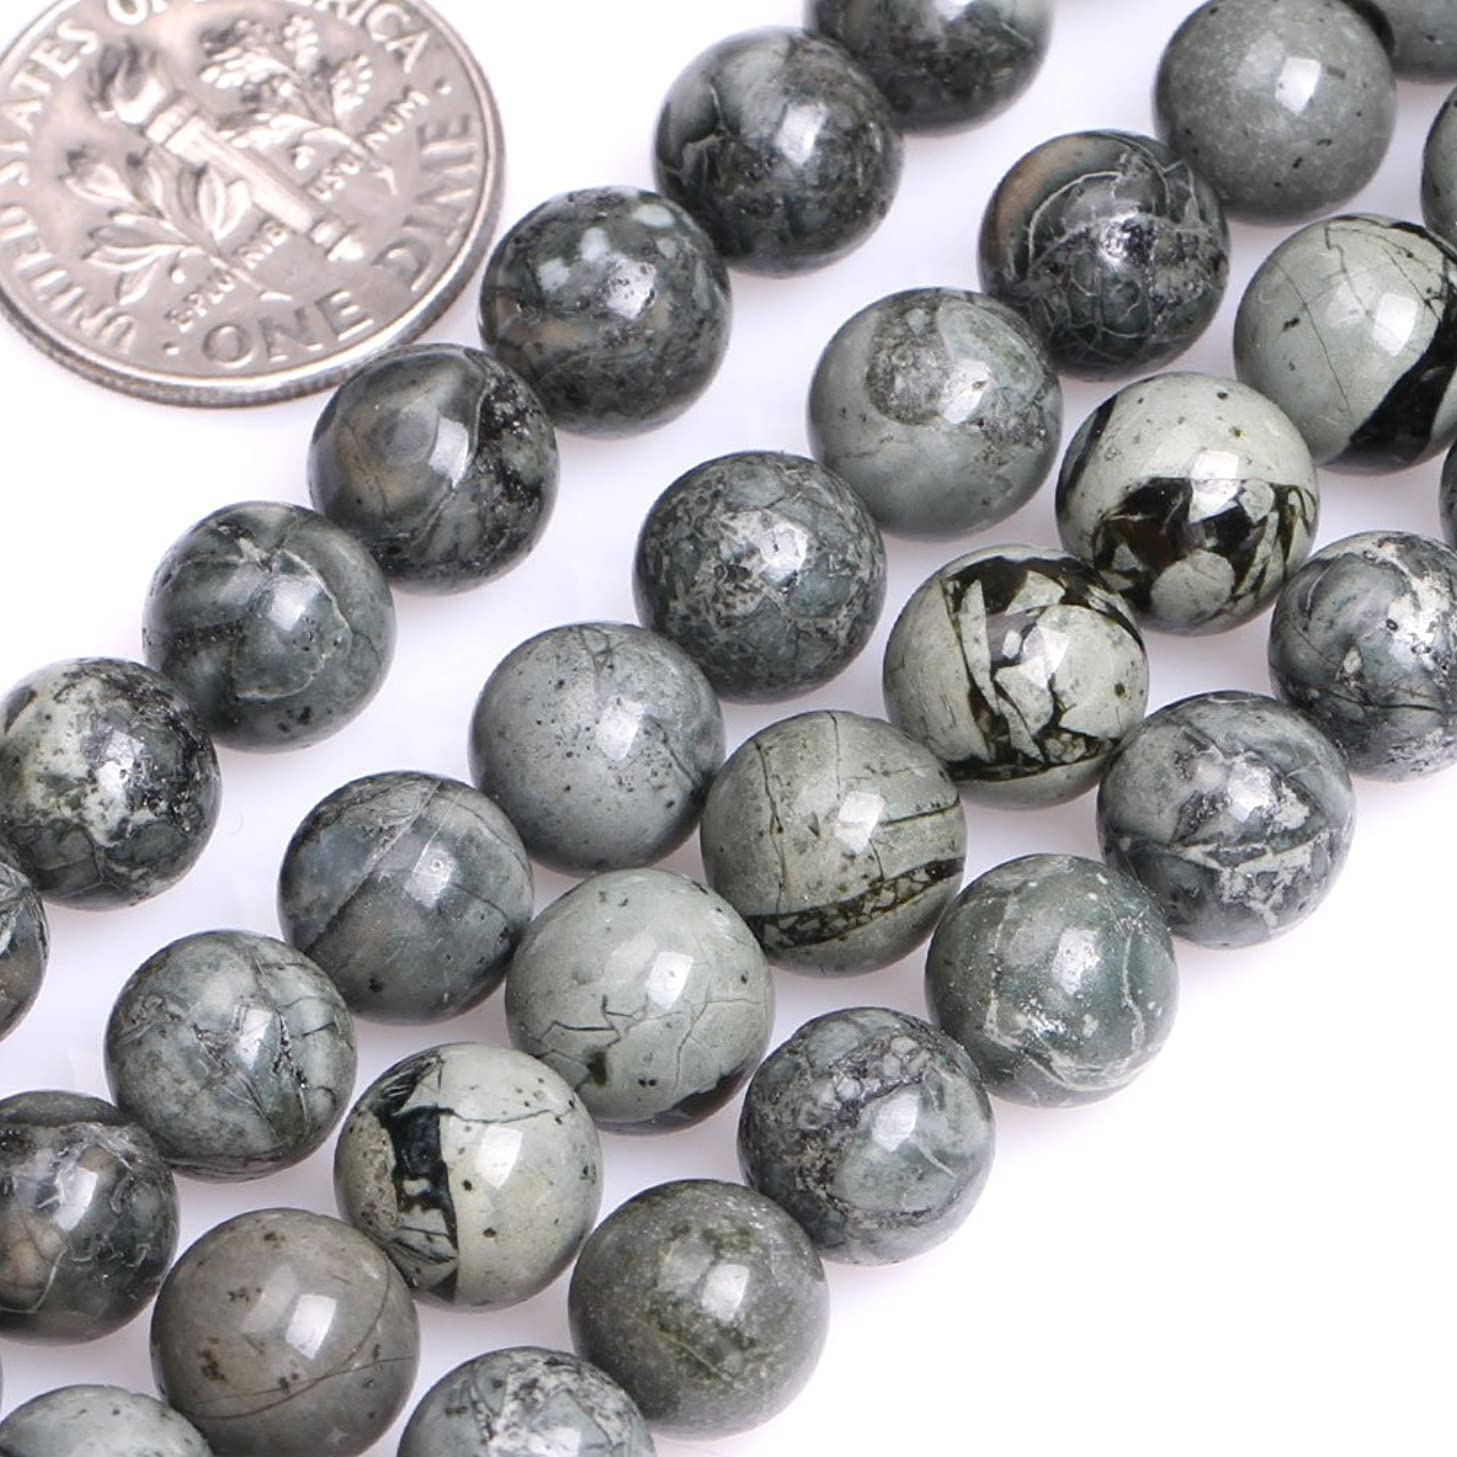 GEM-inside Natural Genuine 8mm Round Gray Green Strip Jasper Beads for Jewelry Making Strand 15